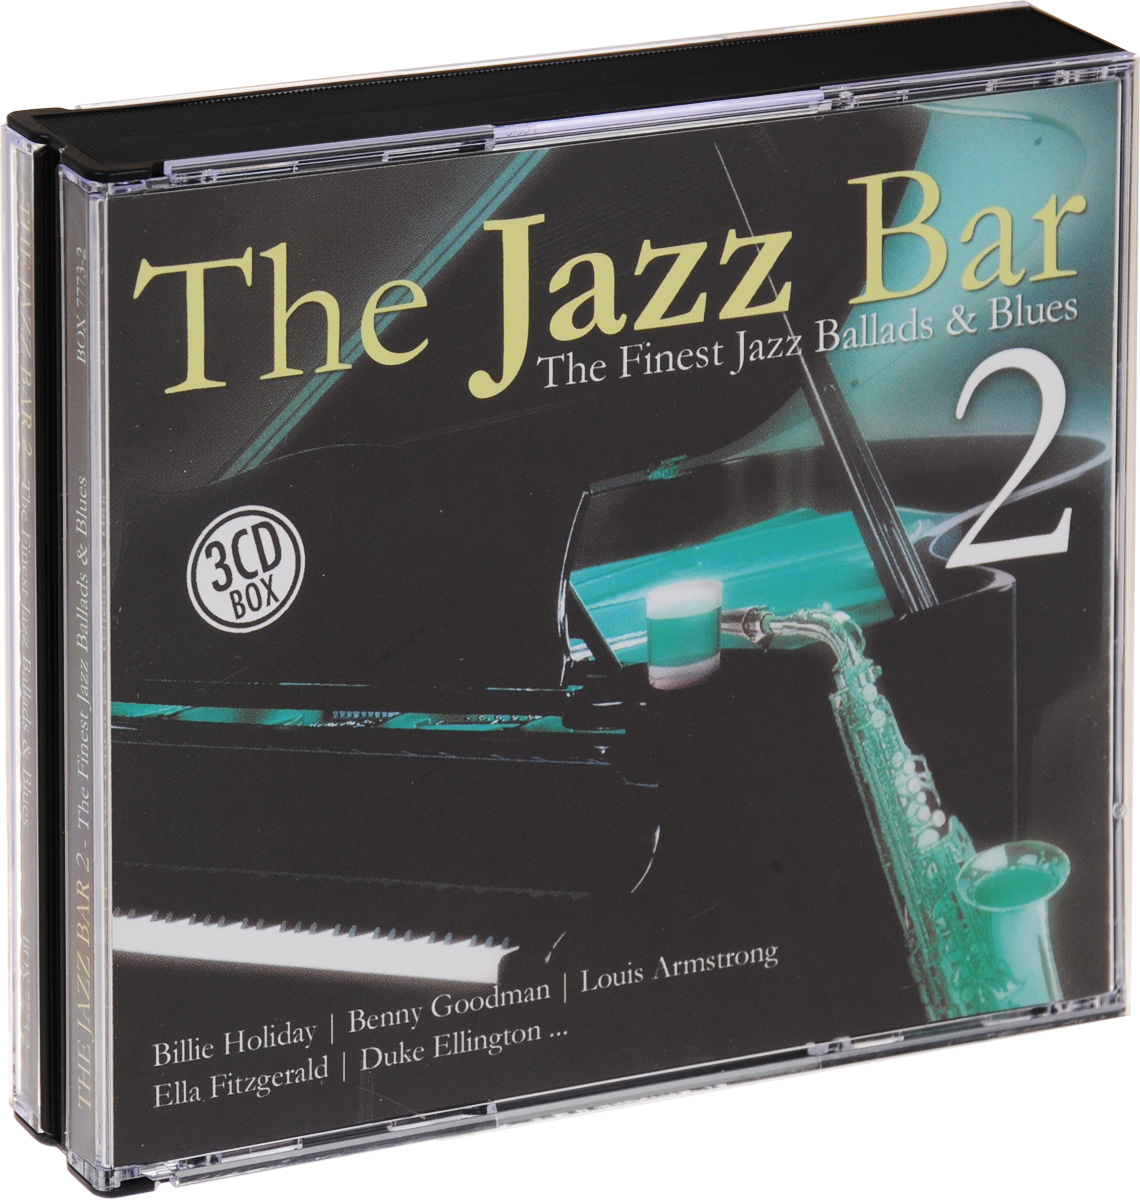 The Jazz Bar 2. The Finest Jazz Ballads & Blues (3 CD)